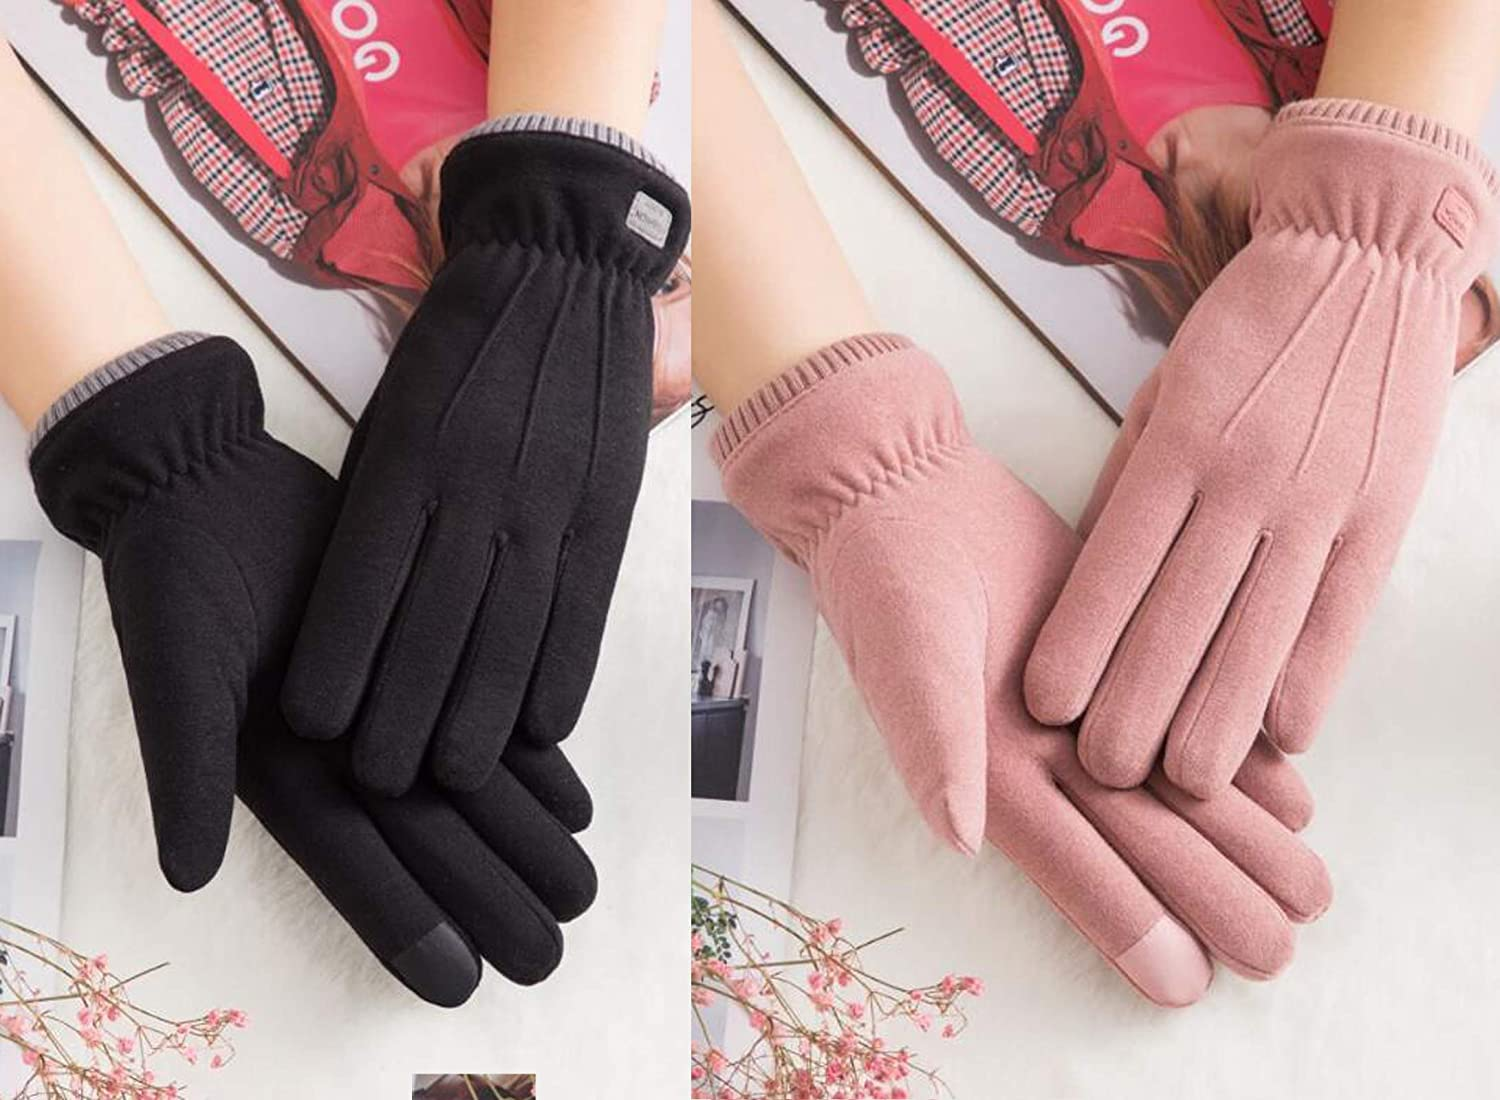 Woogwin 2//4 Pairs Winter Gloves for Women Warm Touchscreen Windproof Fleece Gloves Girls Cold Weather